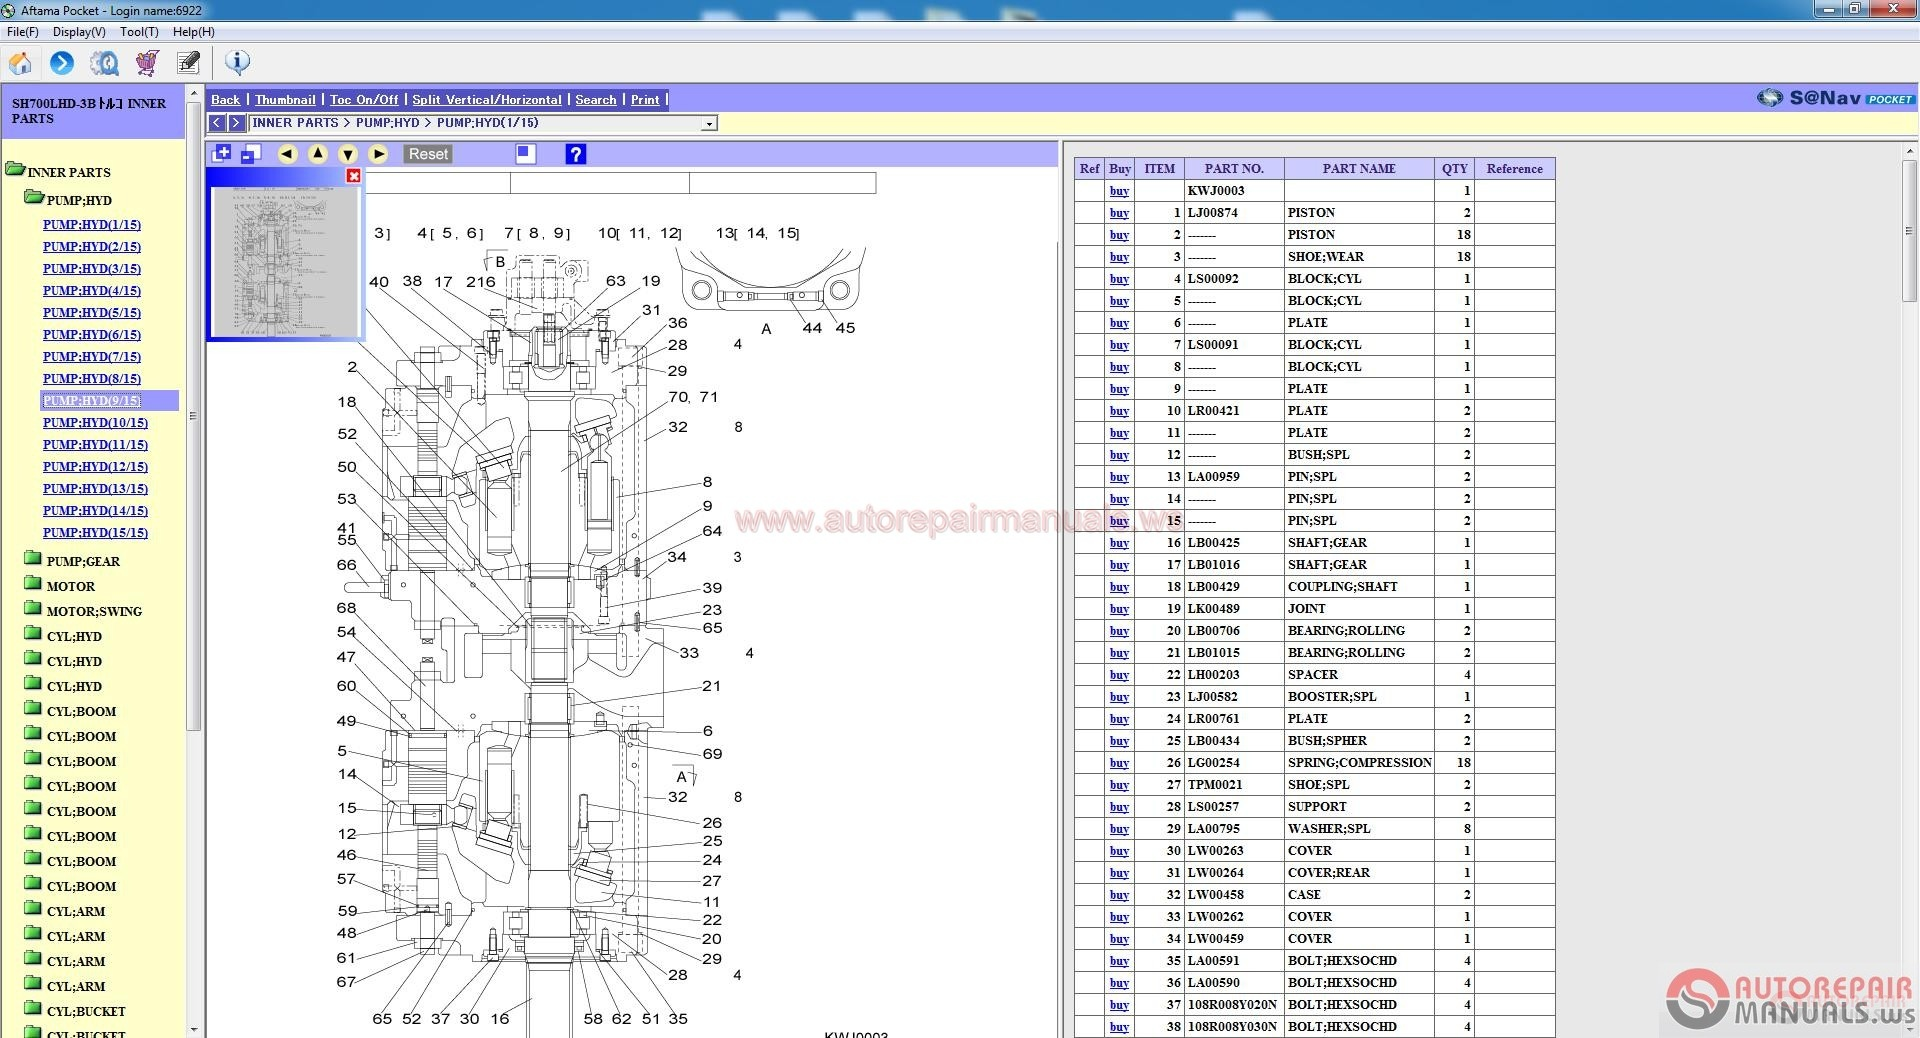 Sumitomo Excavator Parts Catalogs For Turkey  01 2010